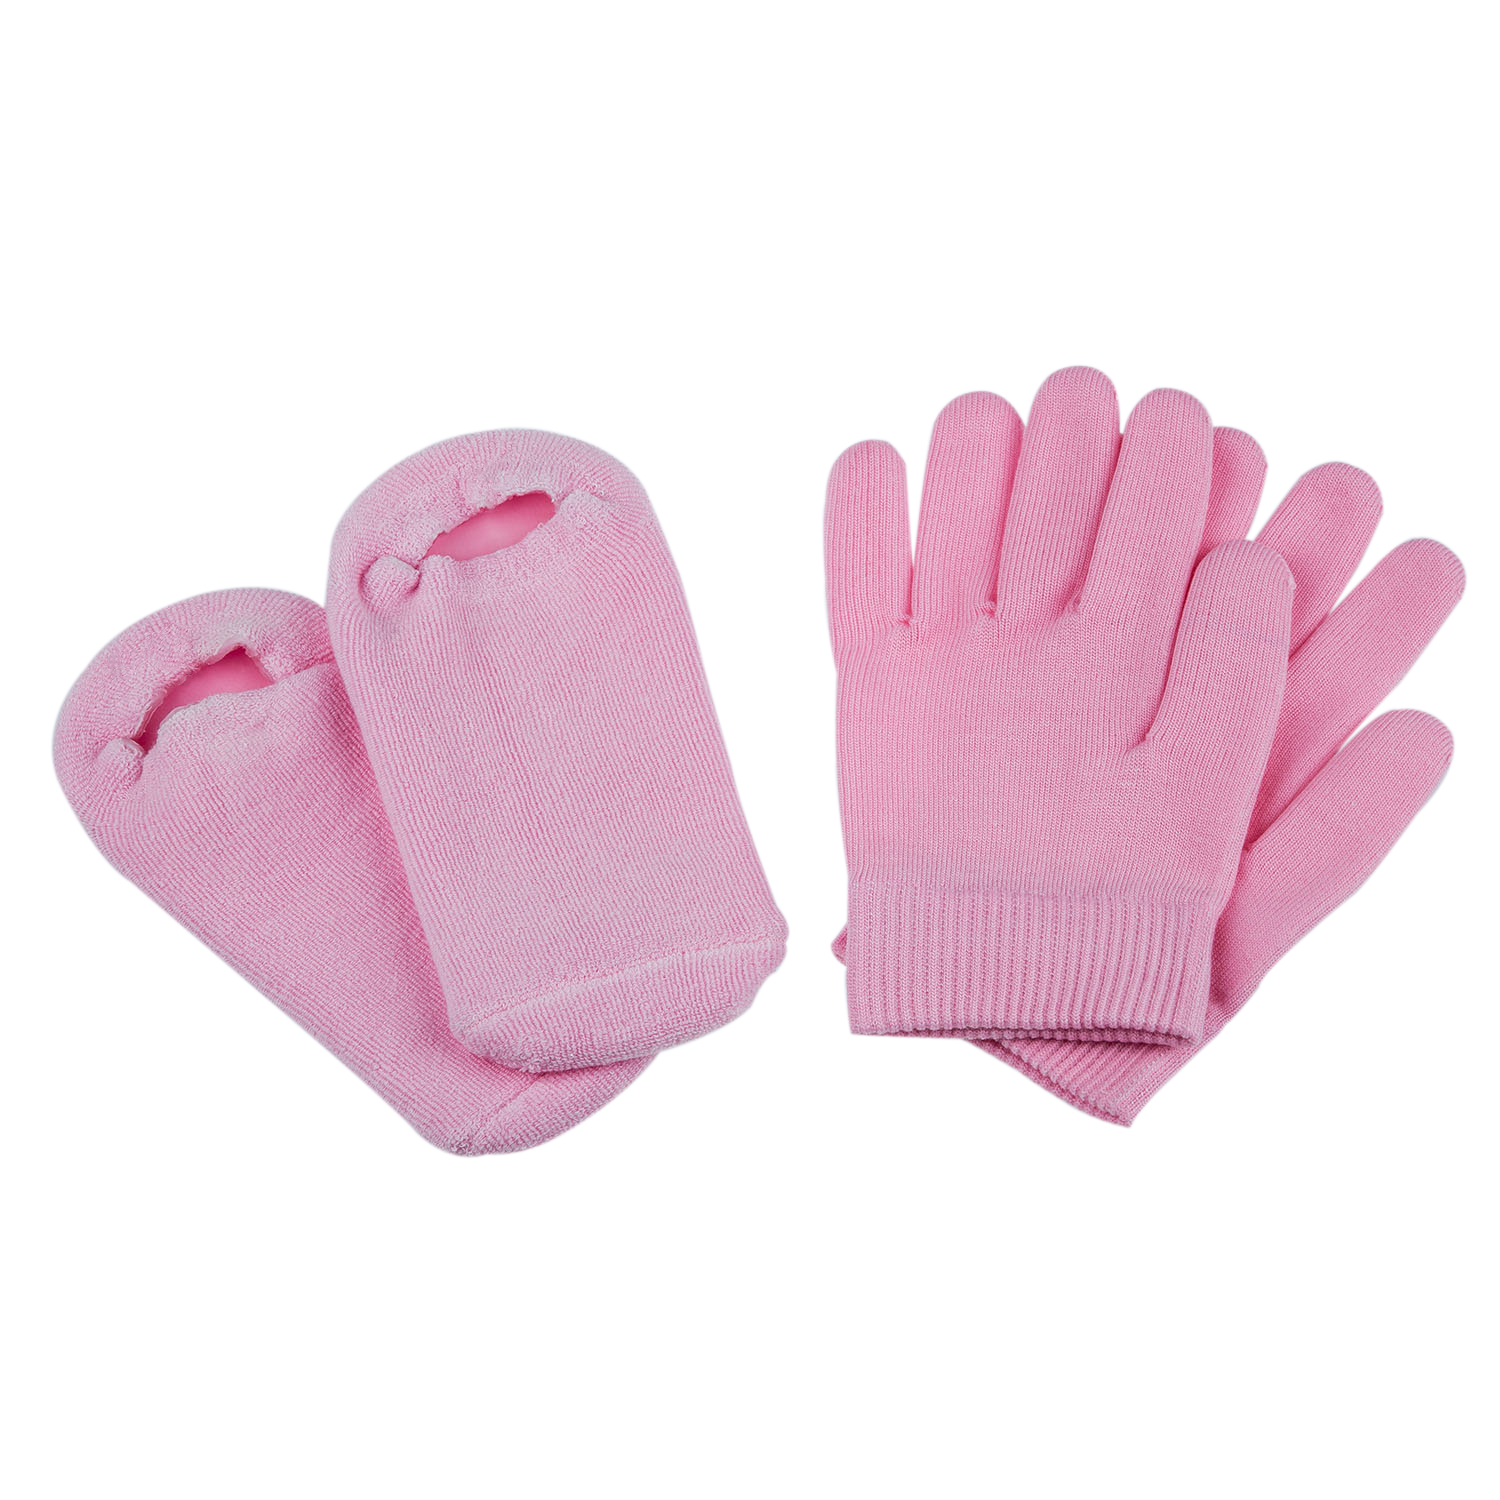 Beauty SPA Socks And Gloves Moisturizing Gel Therapy Skin Care - Pink